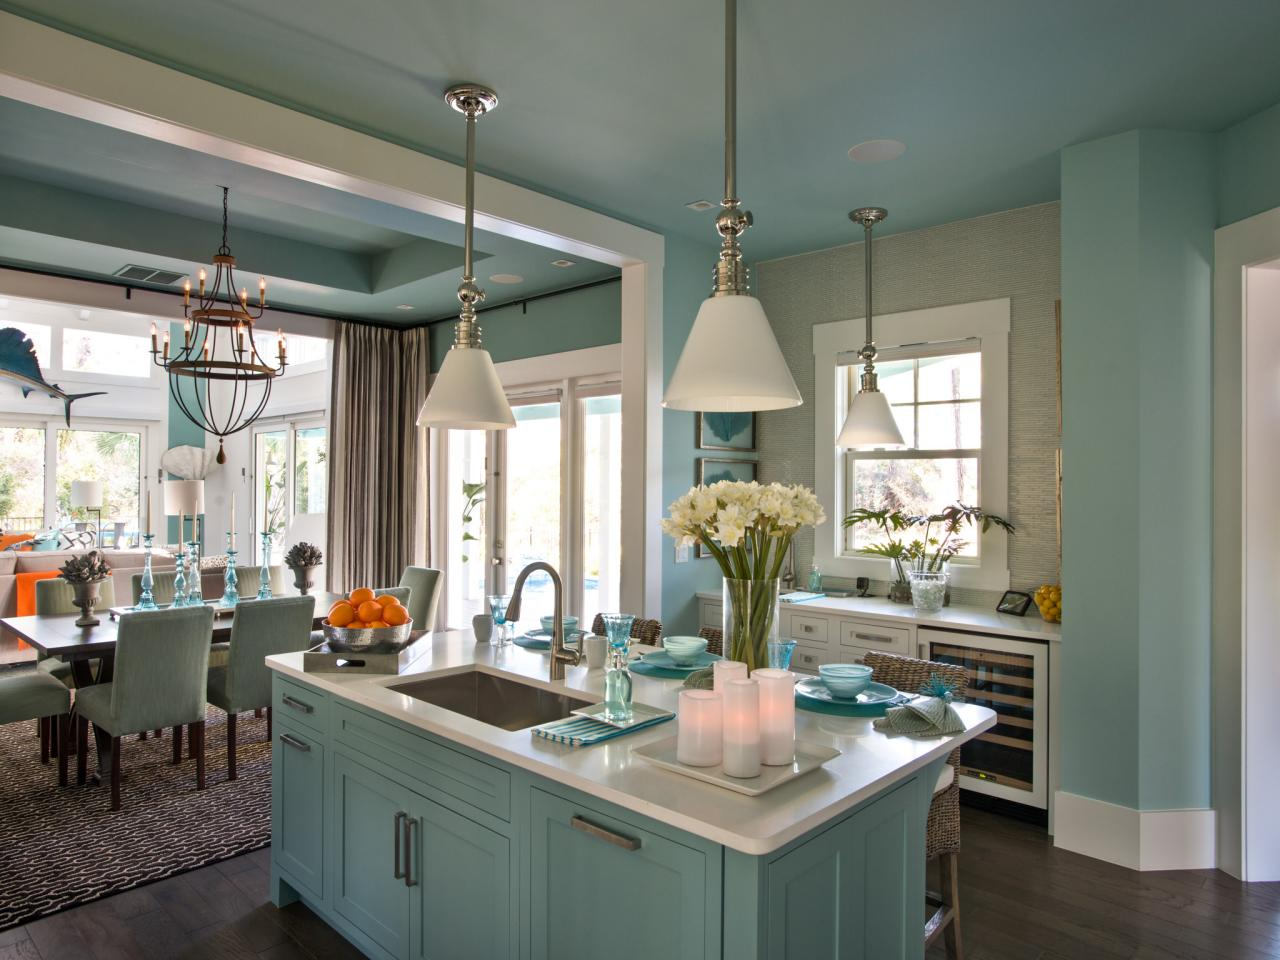 Green Painted Kitchen Cabinets kitchen cabinet paint colors: pictures & ideas from hgtv | hgtv